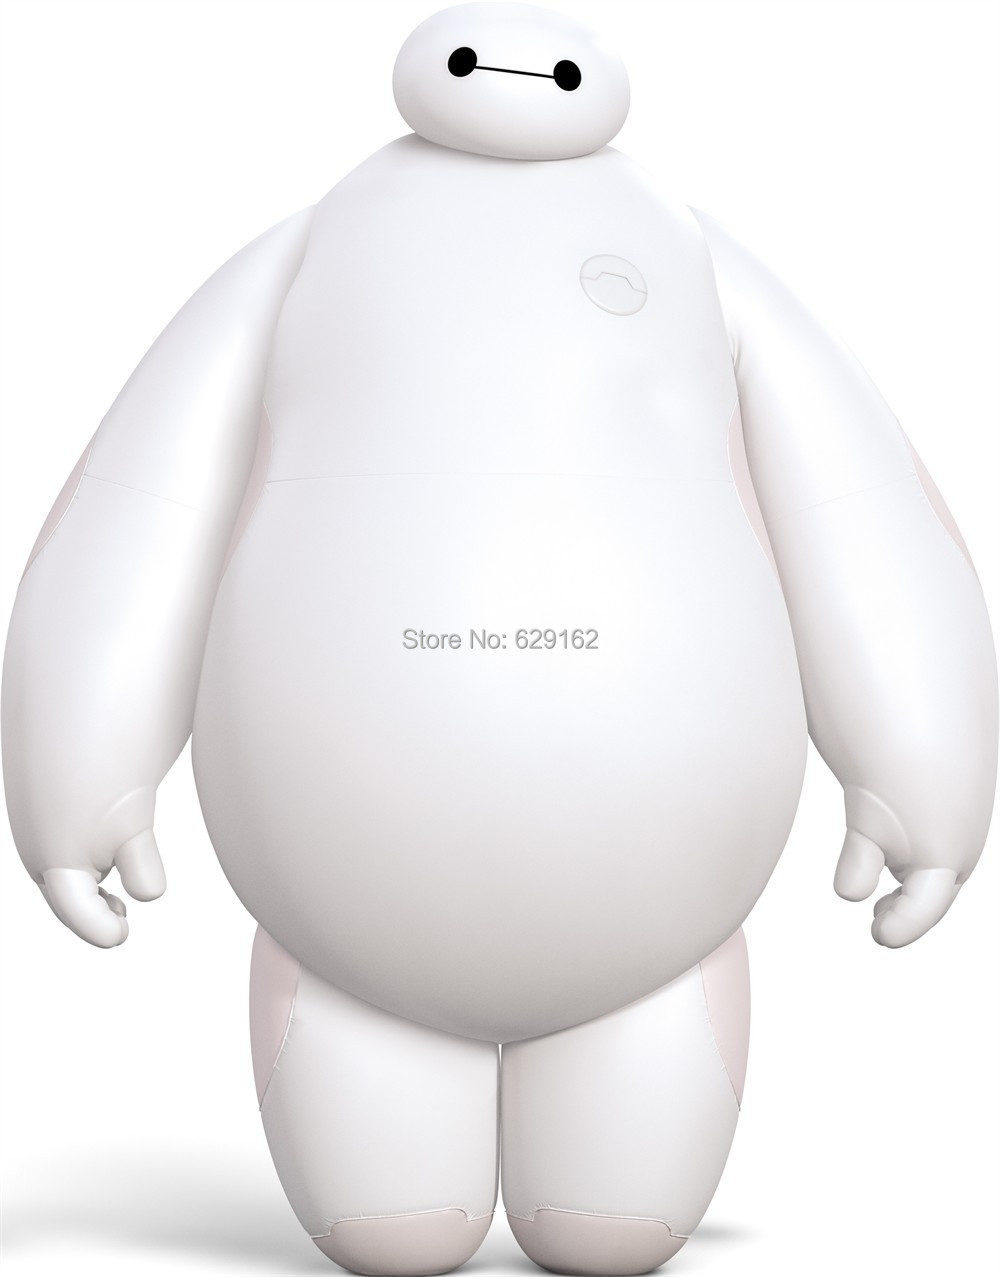 New Big Hero 6 Baymax PVC Action Figure Dolls. Arms And Waist Can Be Rotated 360 Degrees, High Quality 15CM Robot. Free Shipping(China (Mainland))